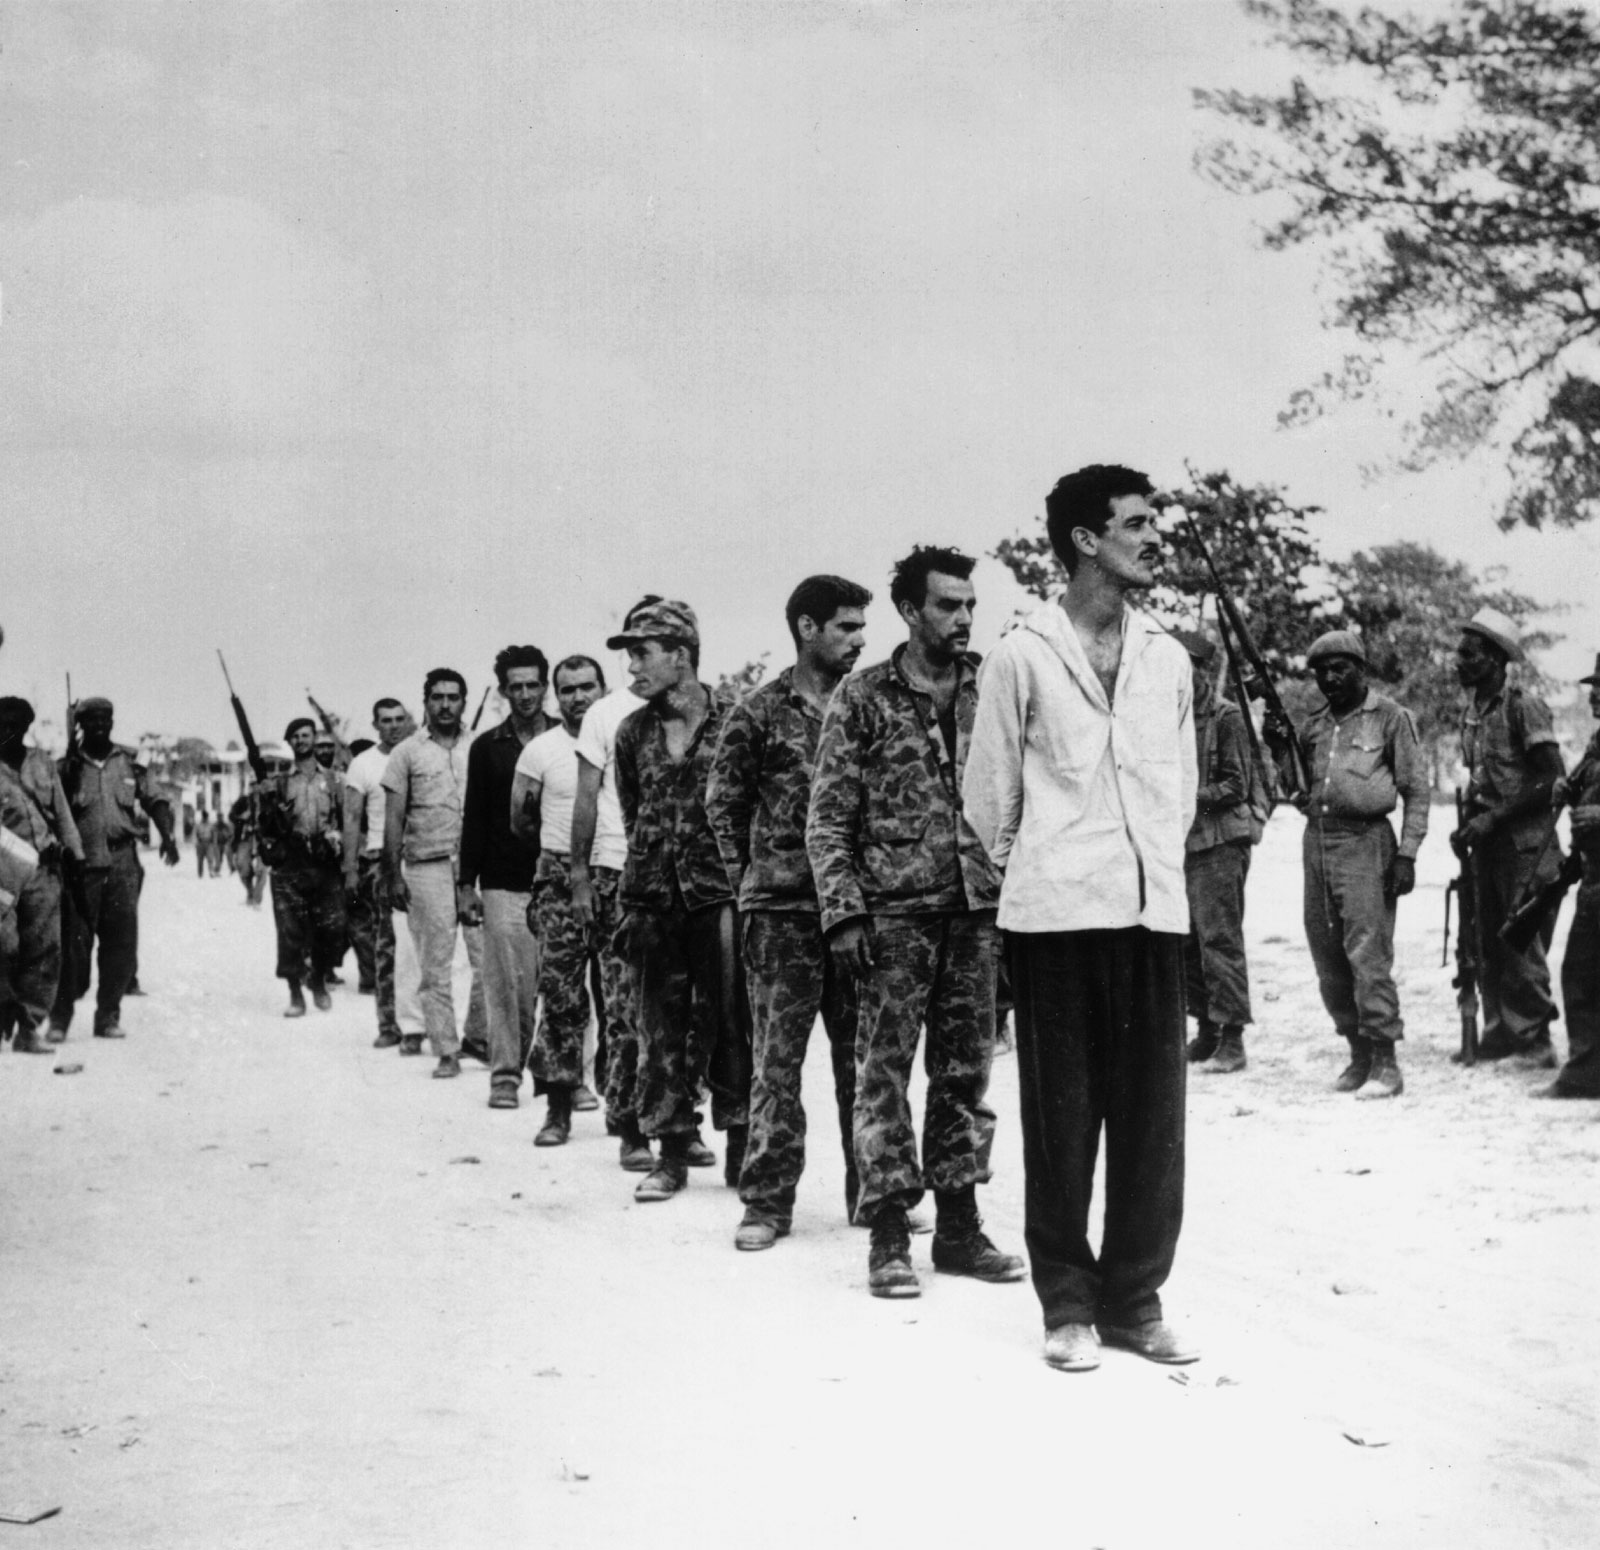 Captured Cuban exiles are lined up by Castro's soldiers at the Bay of Pigs